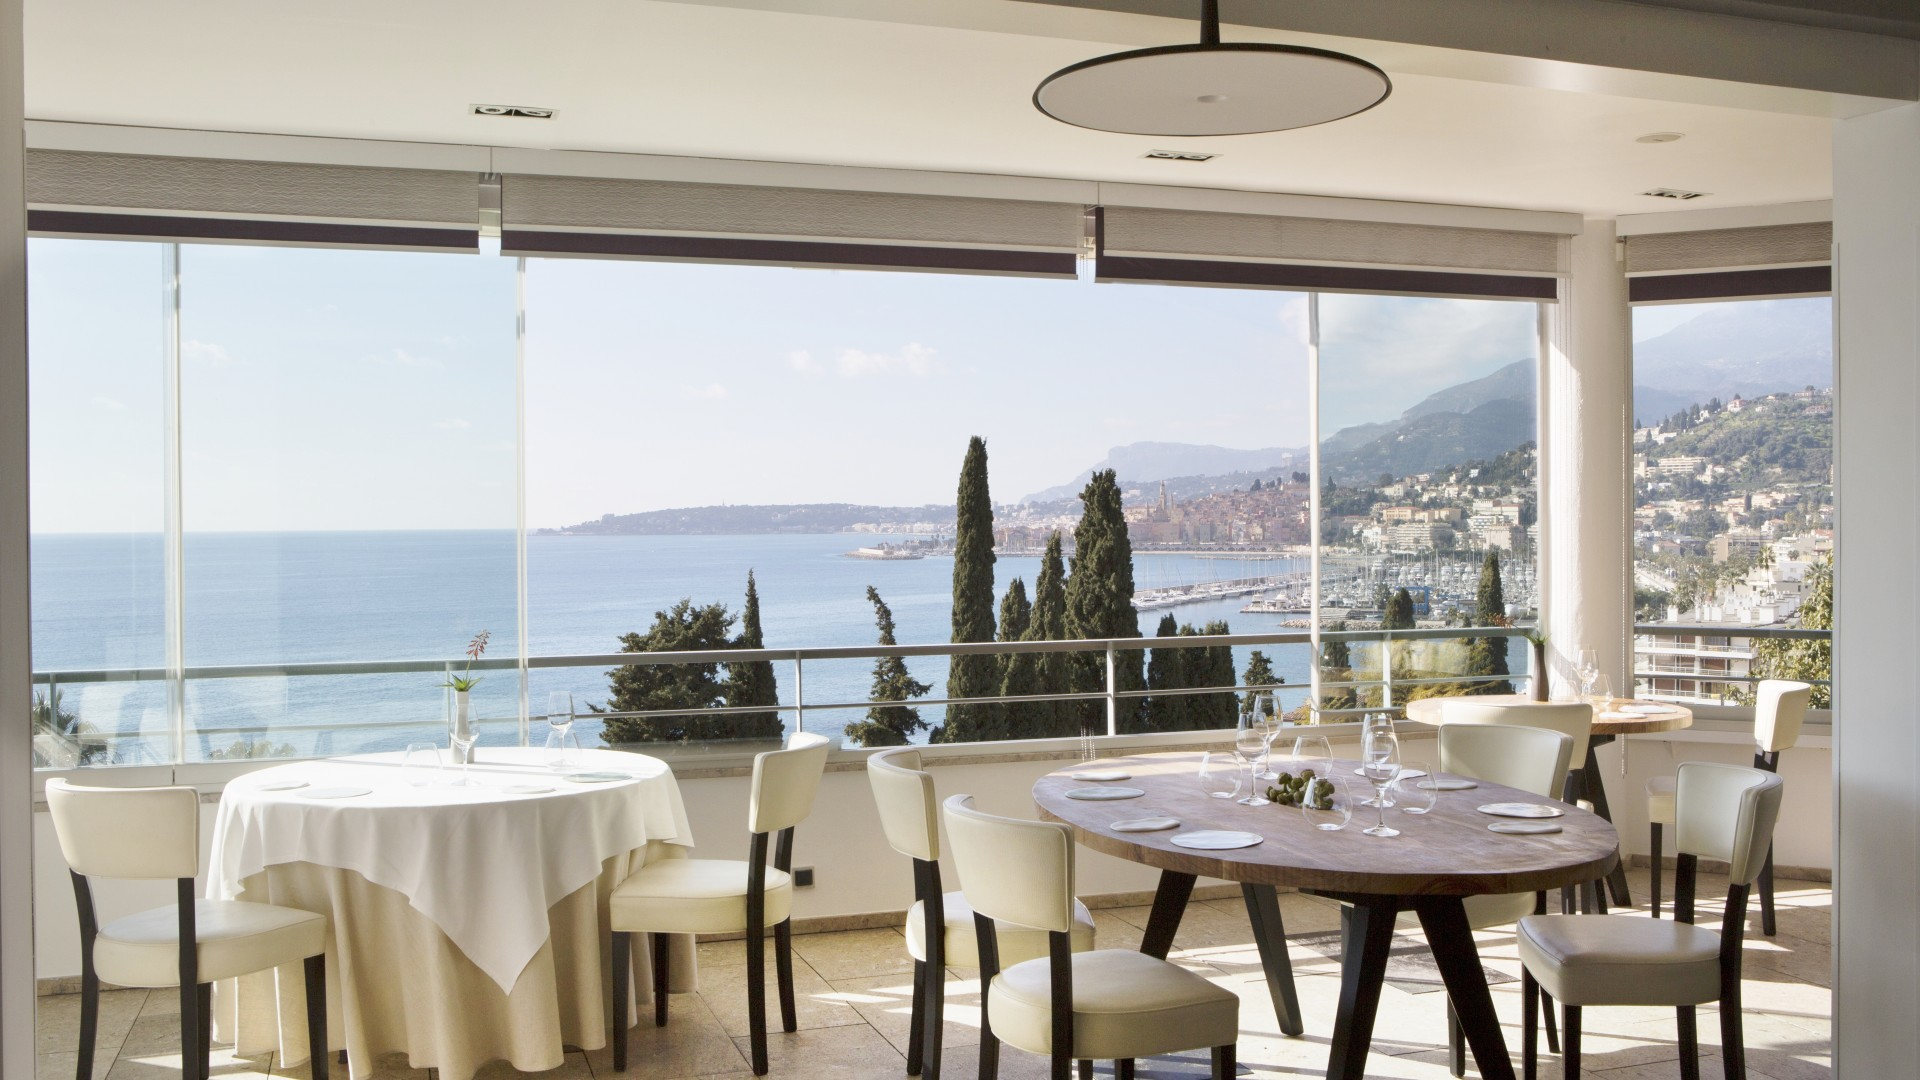 Cuisine But Mirazur The Côte D Azur Restaurant Transforming French Cuisine